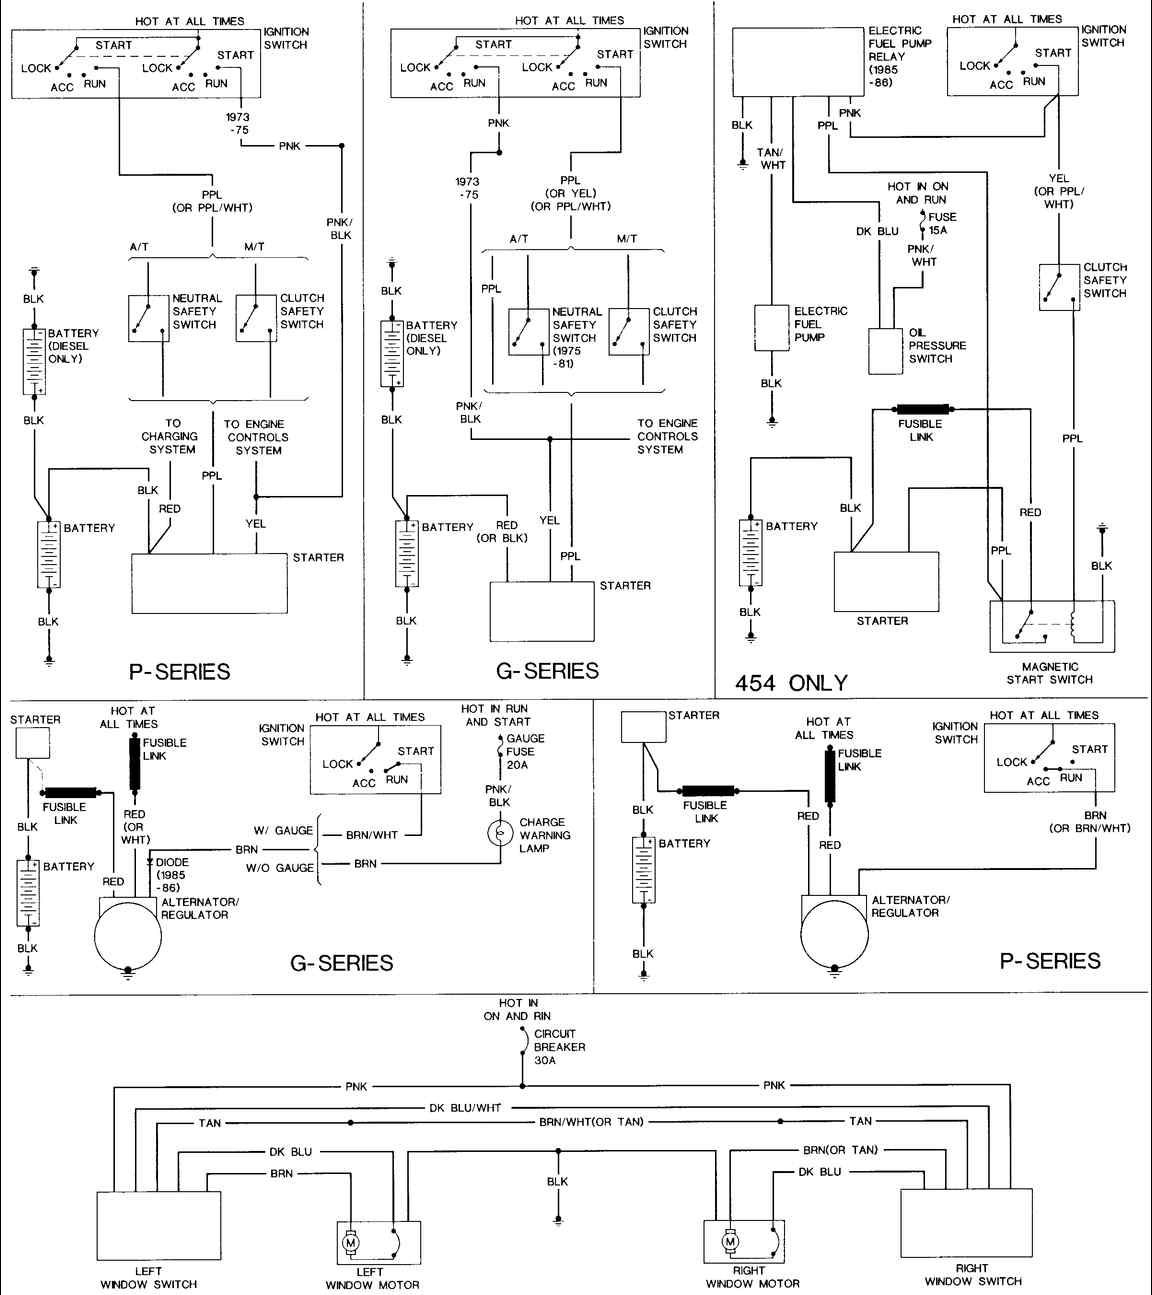 0c73623a181dc376dbb4777e2029d285 85 chevy truck wiring diagram 85 chevy van the steering column  at reclaimingppi.co